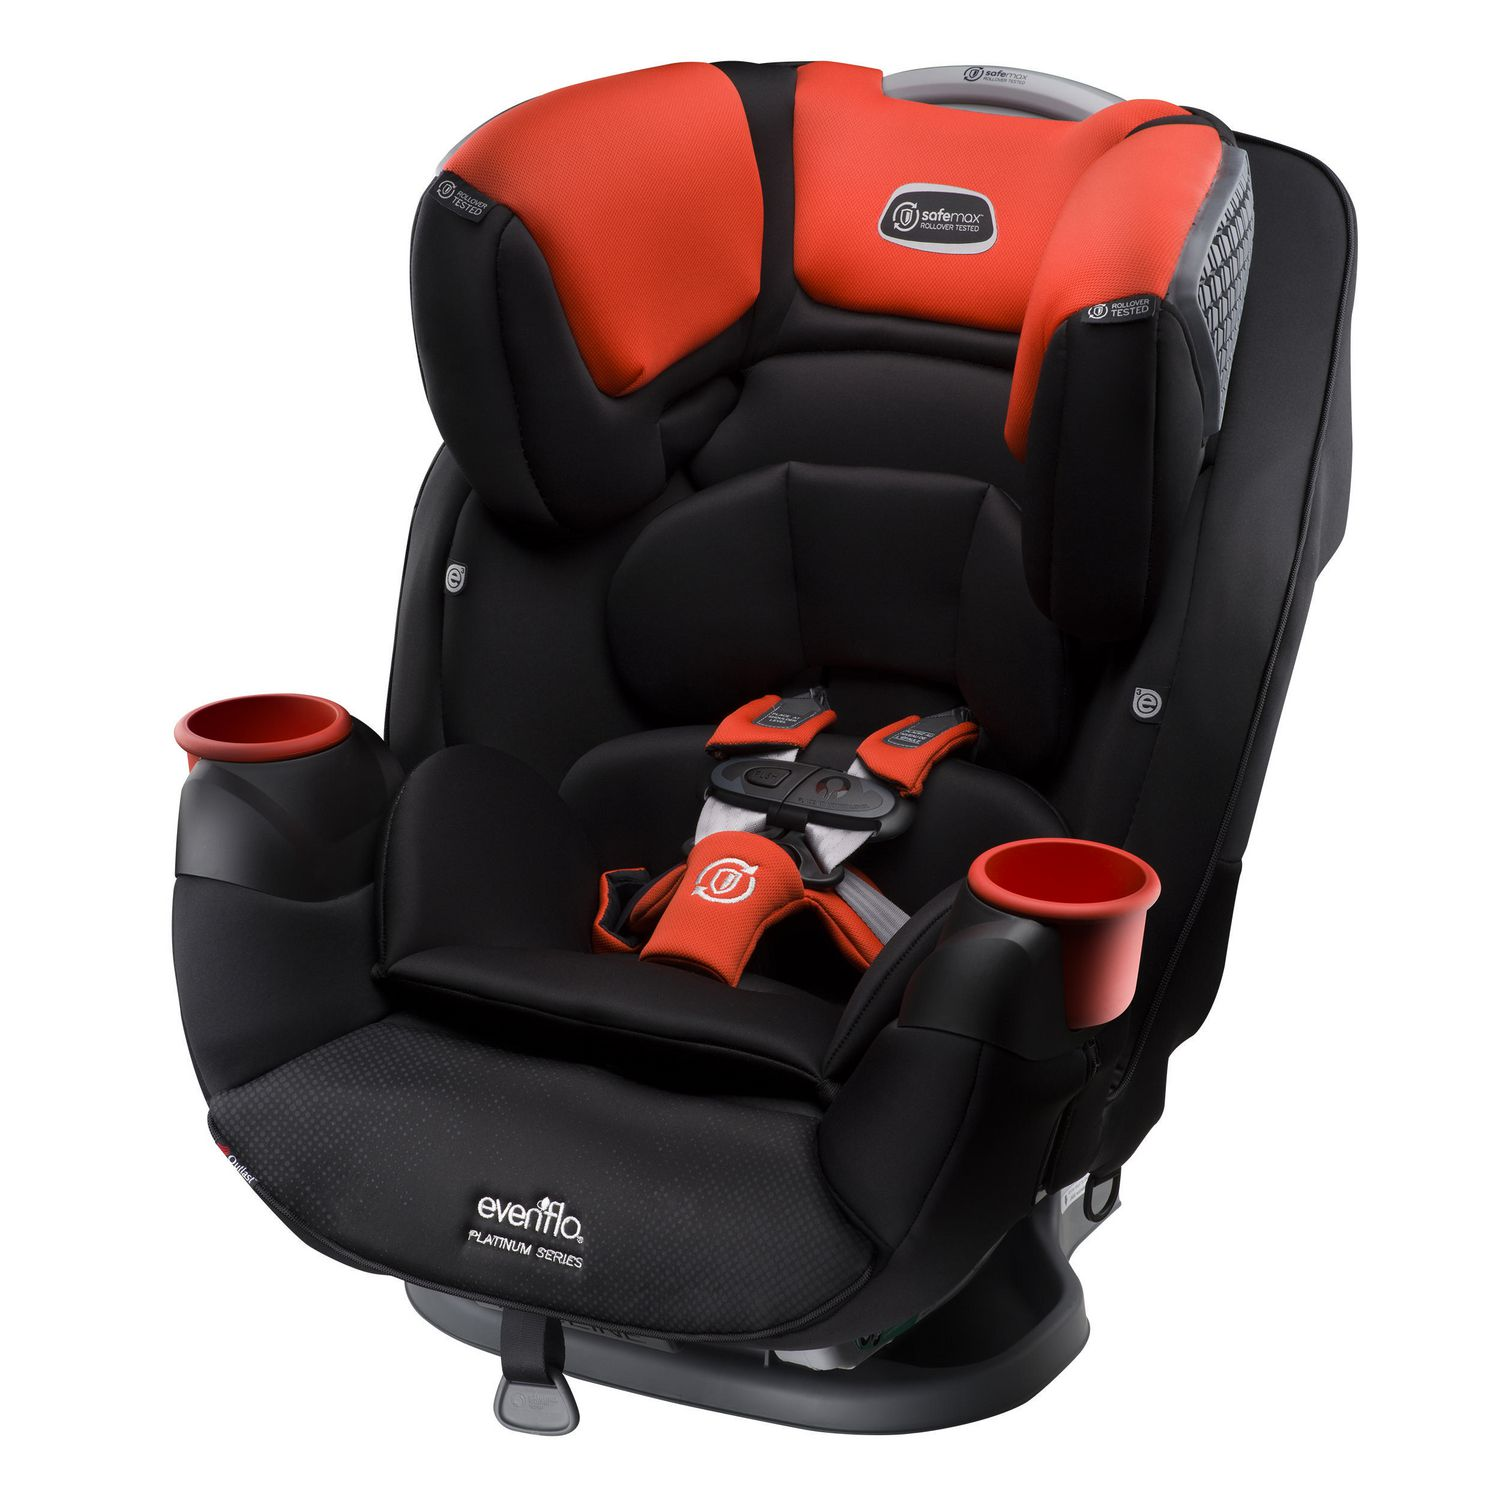 Evenflo Platinum Safemax All In One Car Seat